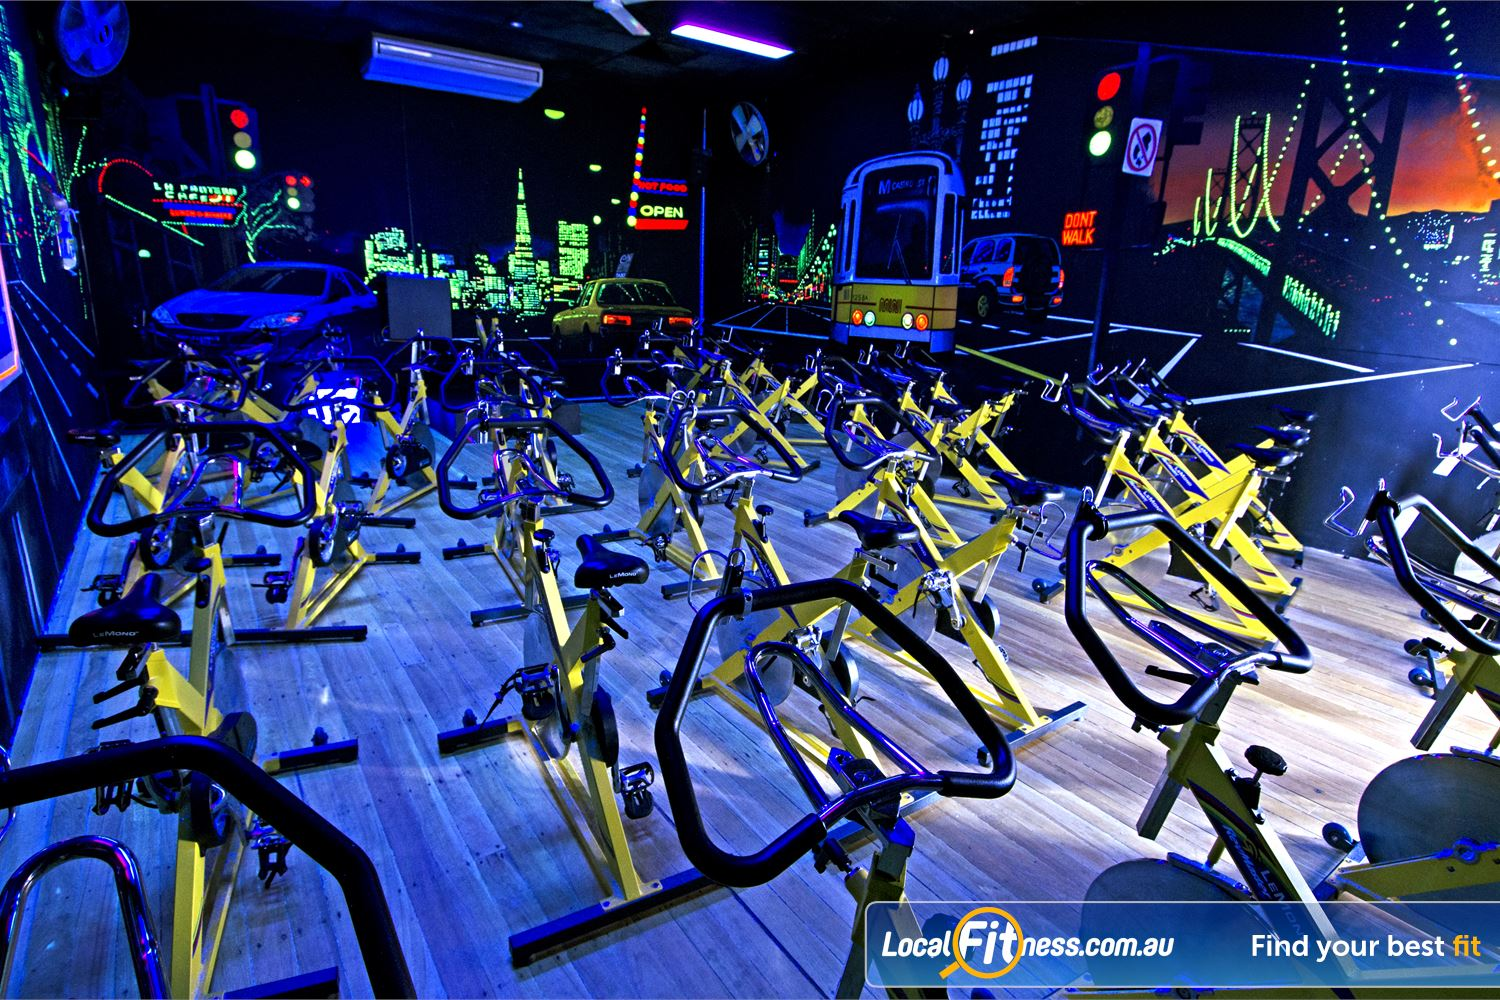 Goodlife Health Clubs Graceville Dedicated Graceville spin cycle studio.